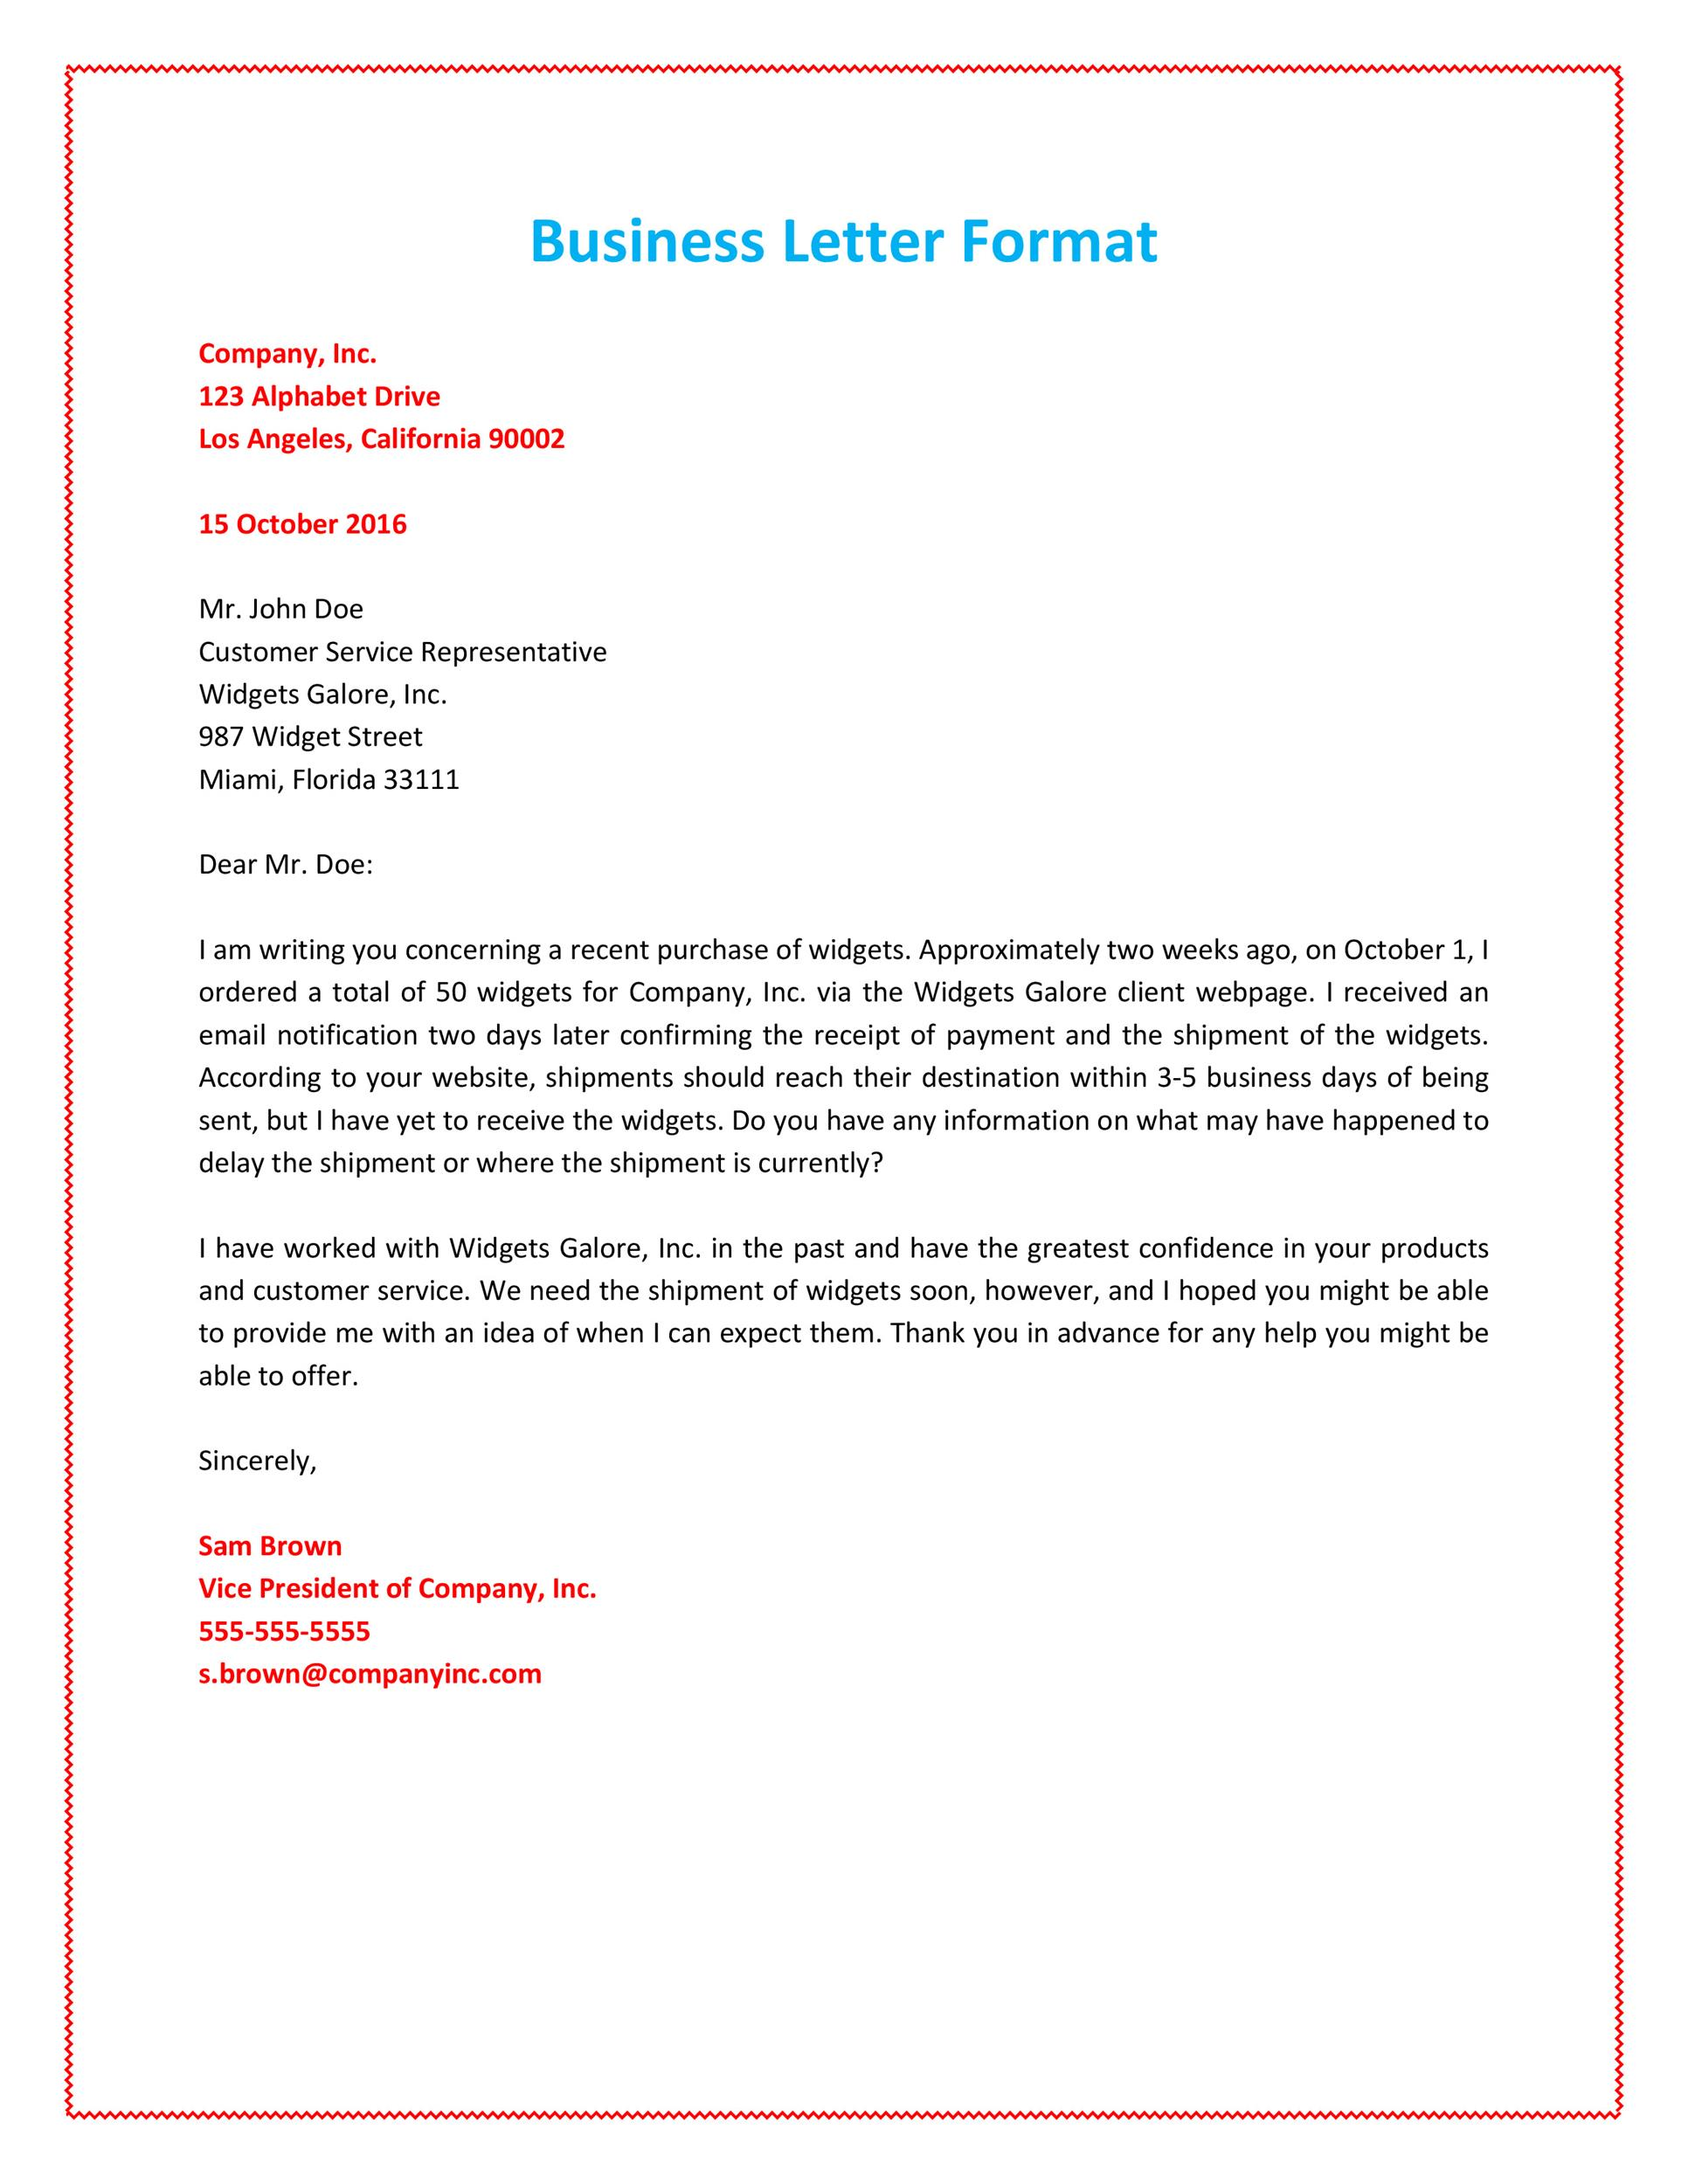 Sample business letters templates vatozozdevelopment sample business letters templates friedricerecipe Image collections